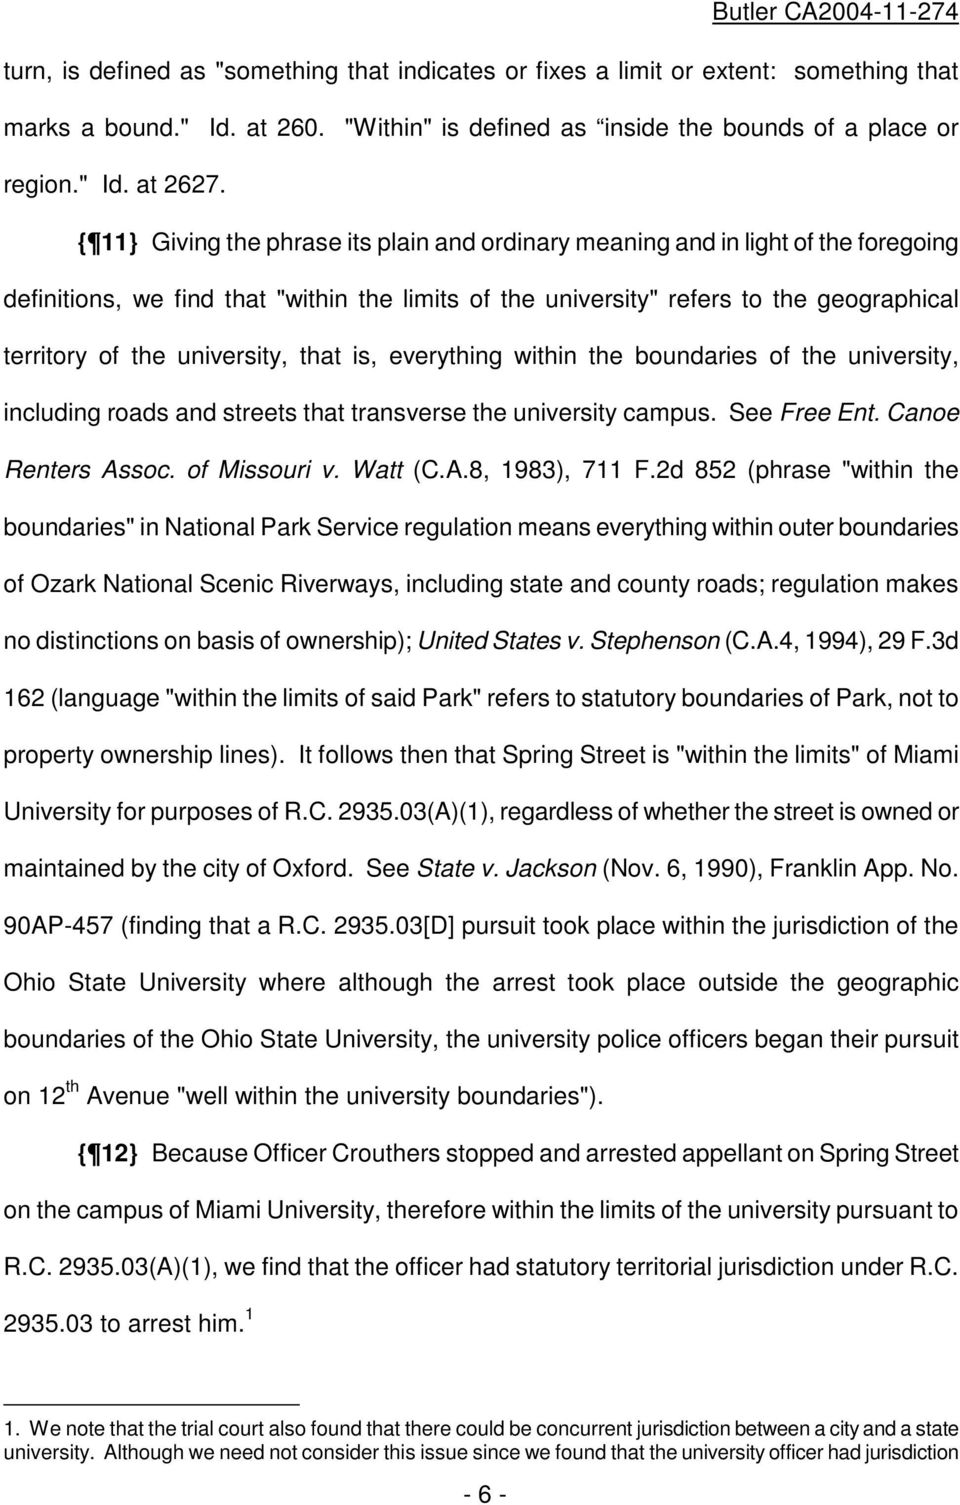 university, that is, everything within the boundaries of the university, including roads and streets that transverse the university campus. See Free Ent. Canoe Renters Assoc. of Missouri v. Watt (C.A.8, 1983), 711 F.